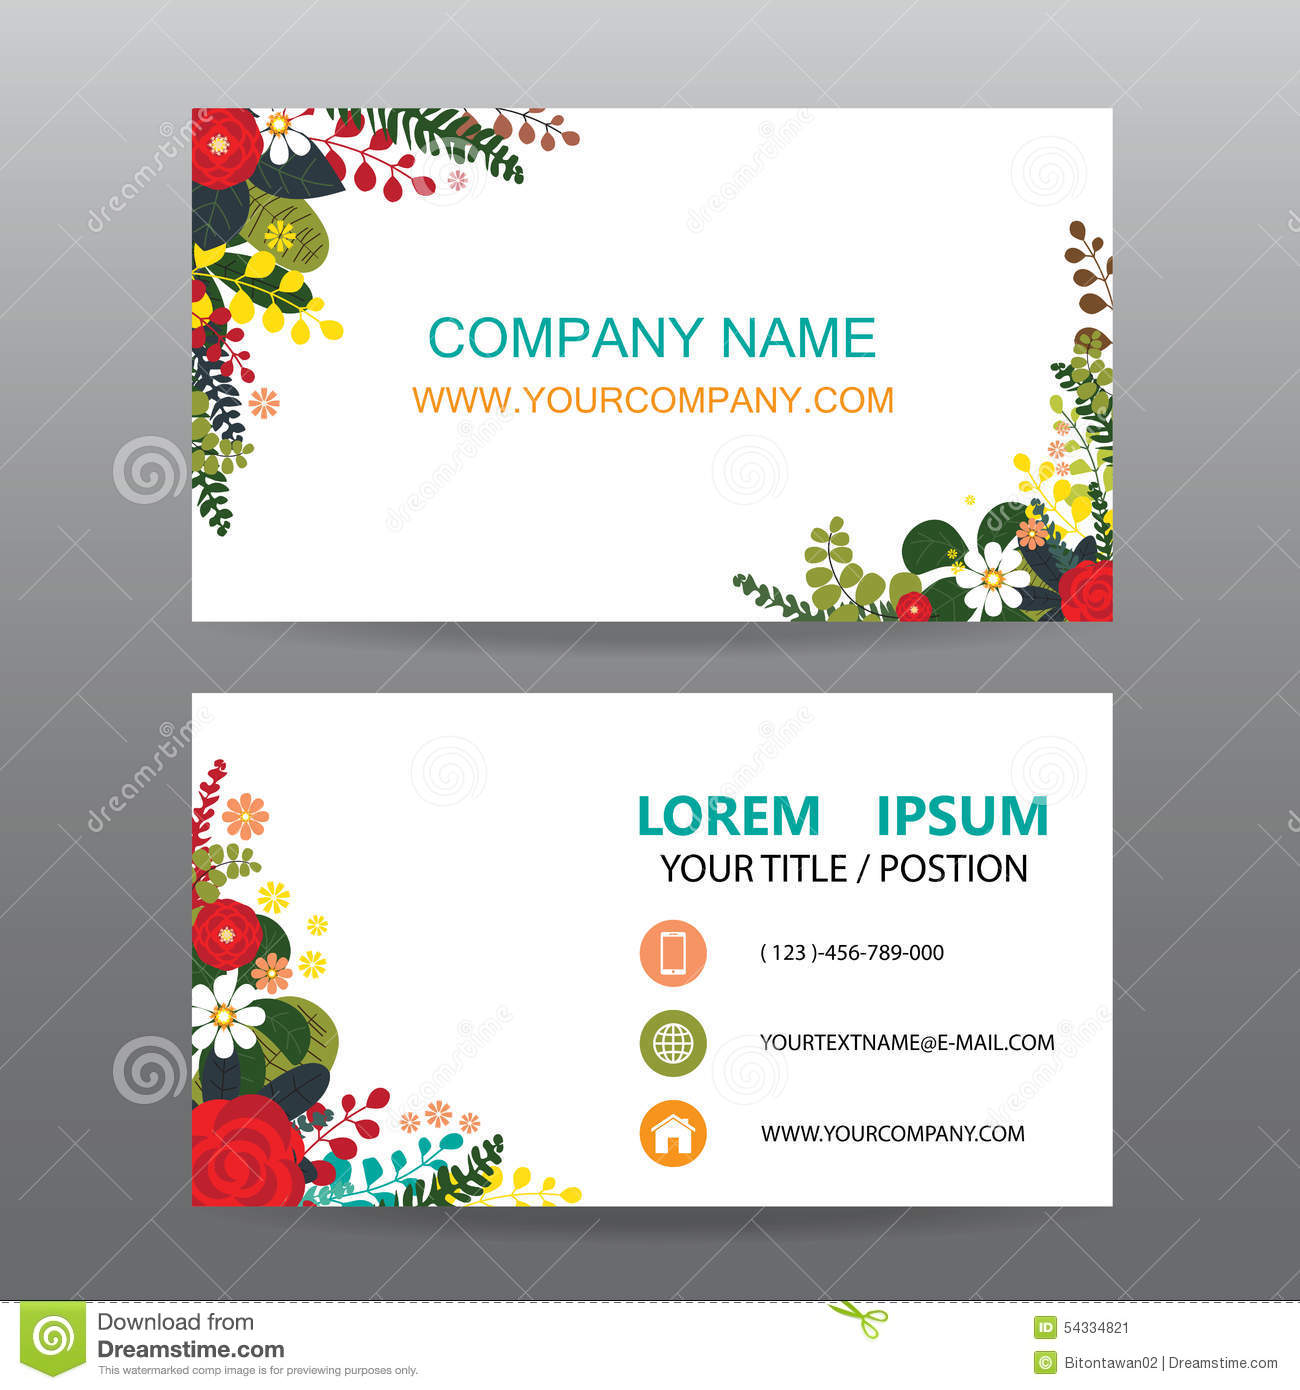 Business card vector backgrounddecorated with flowers frame stock business card vector backgrounddecorated with flowers frame magicingreecefo Gallery